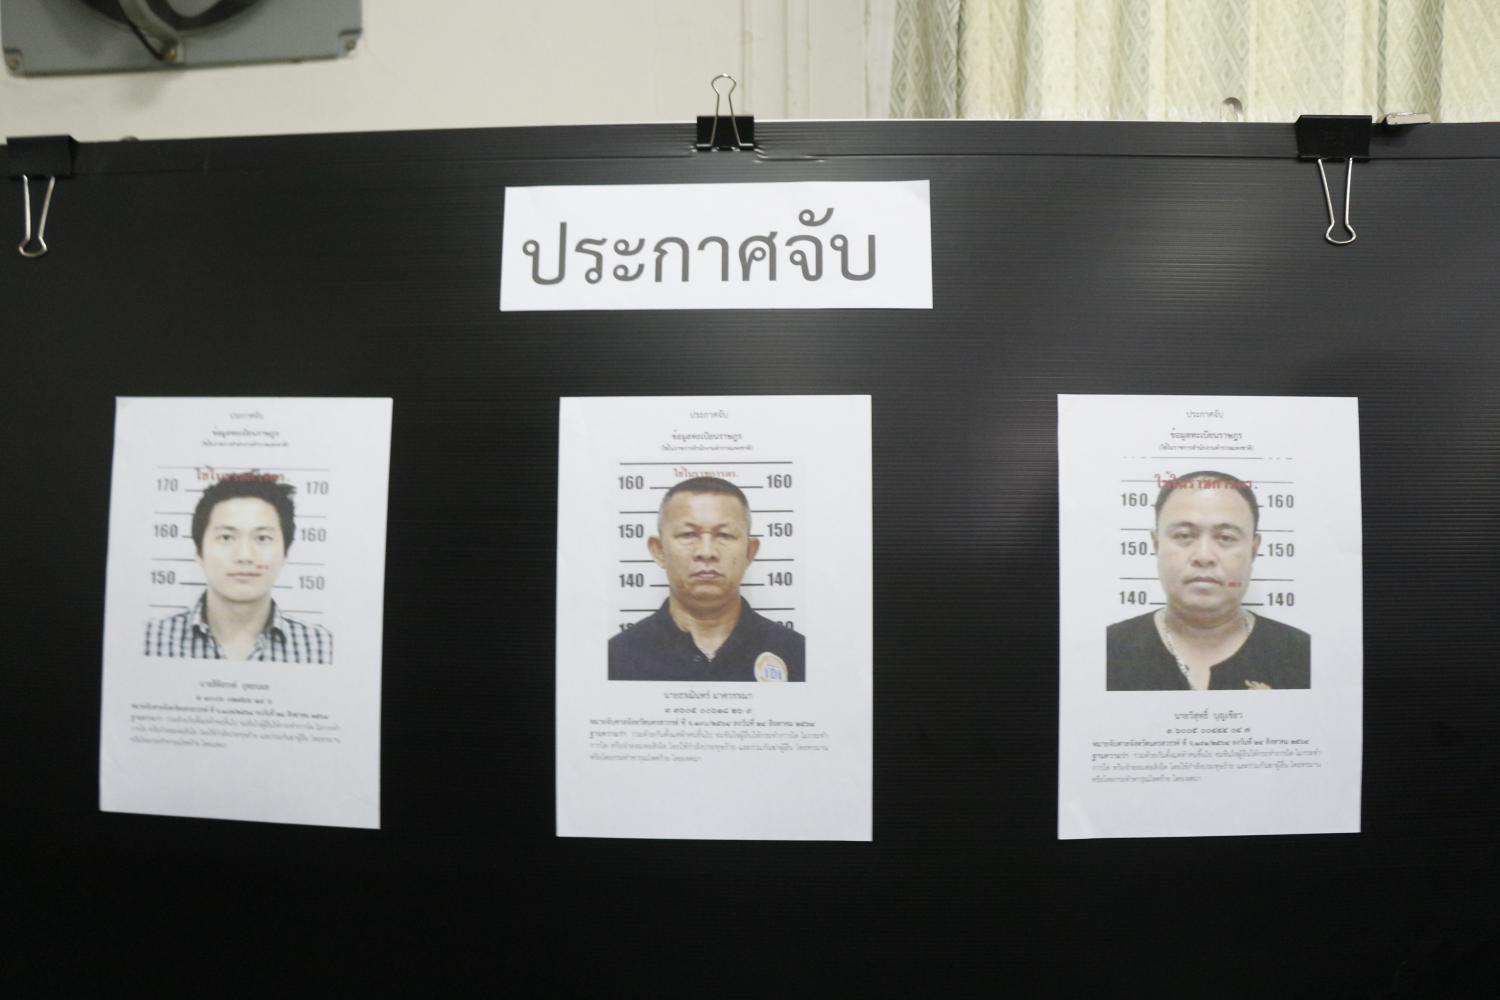 Warrants issued by the Royal Thai Police for police at the station accused of suffocating a drug suspect.bangkok post